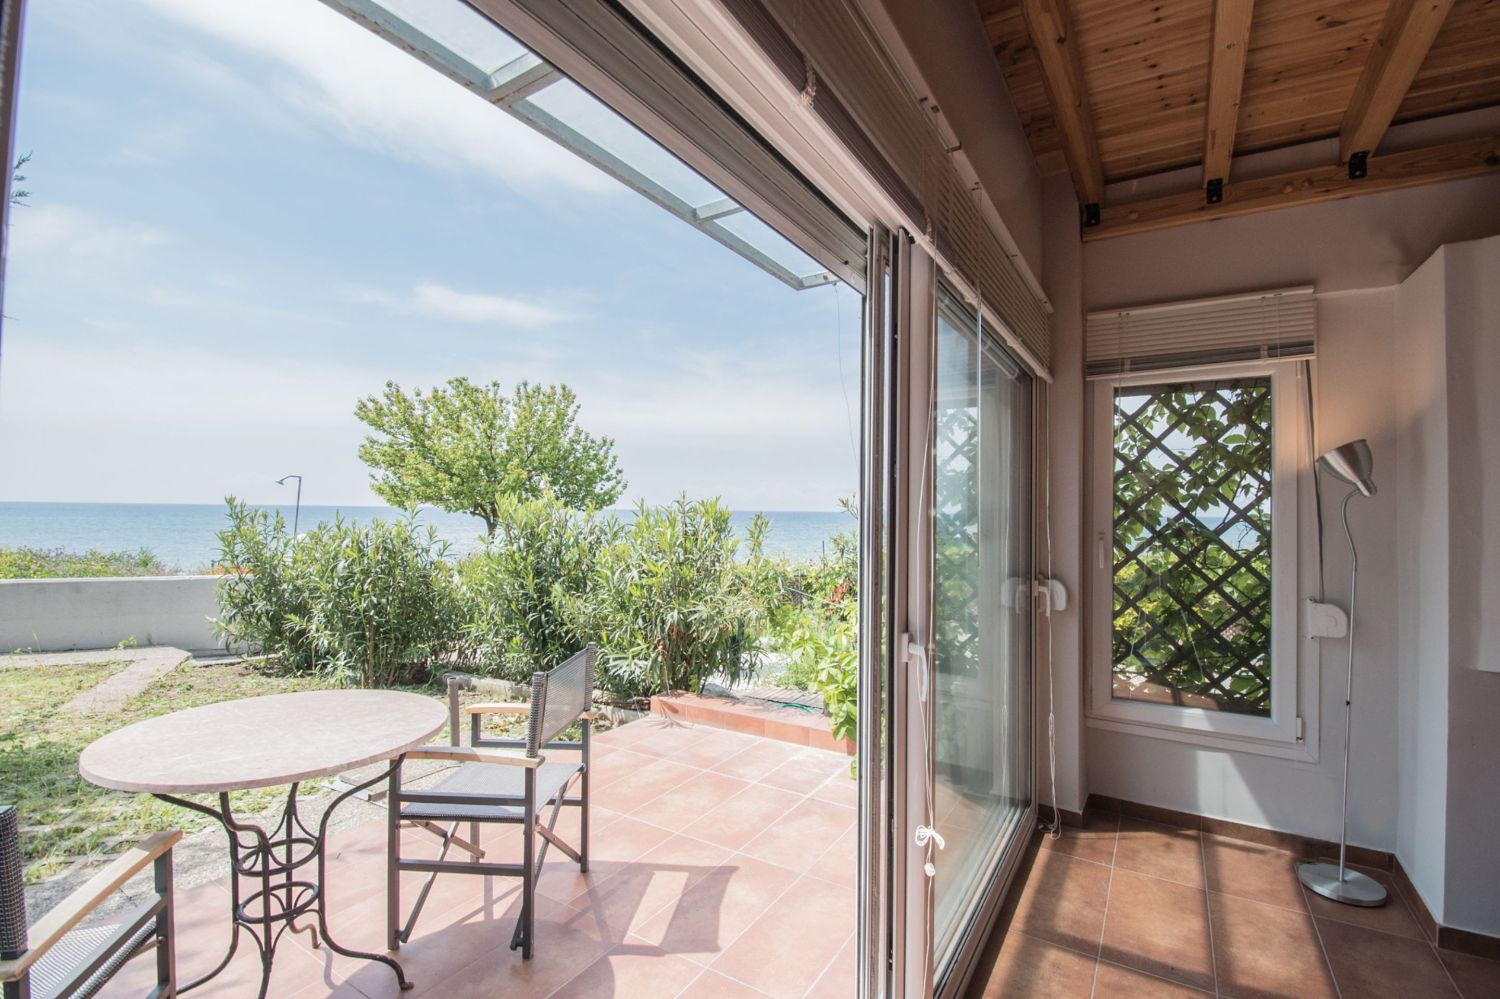 Patio and Sea view